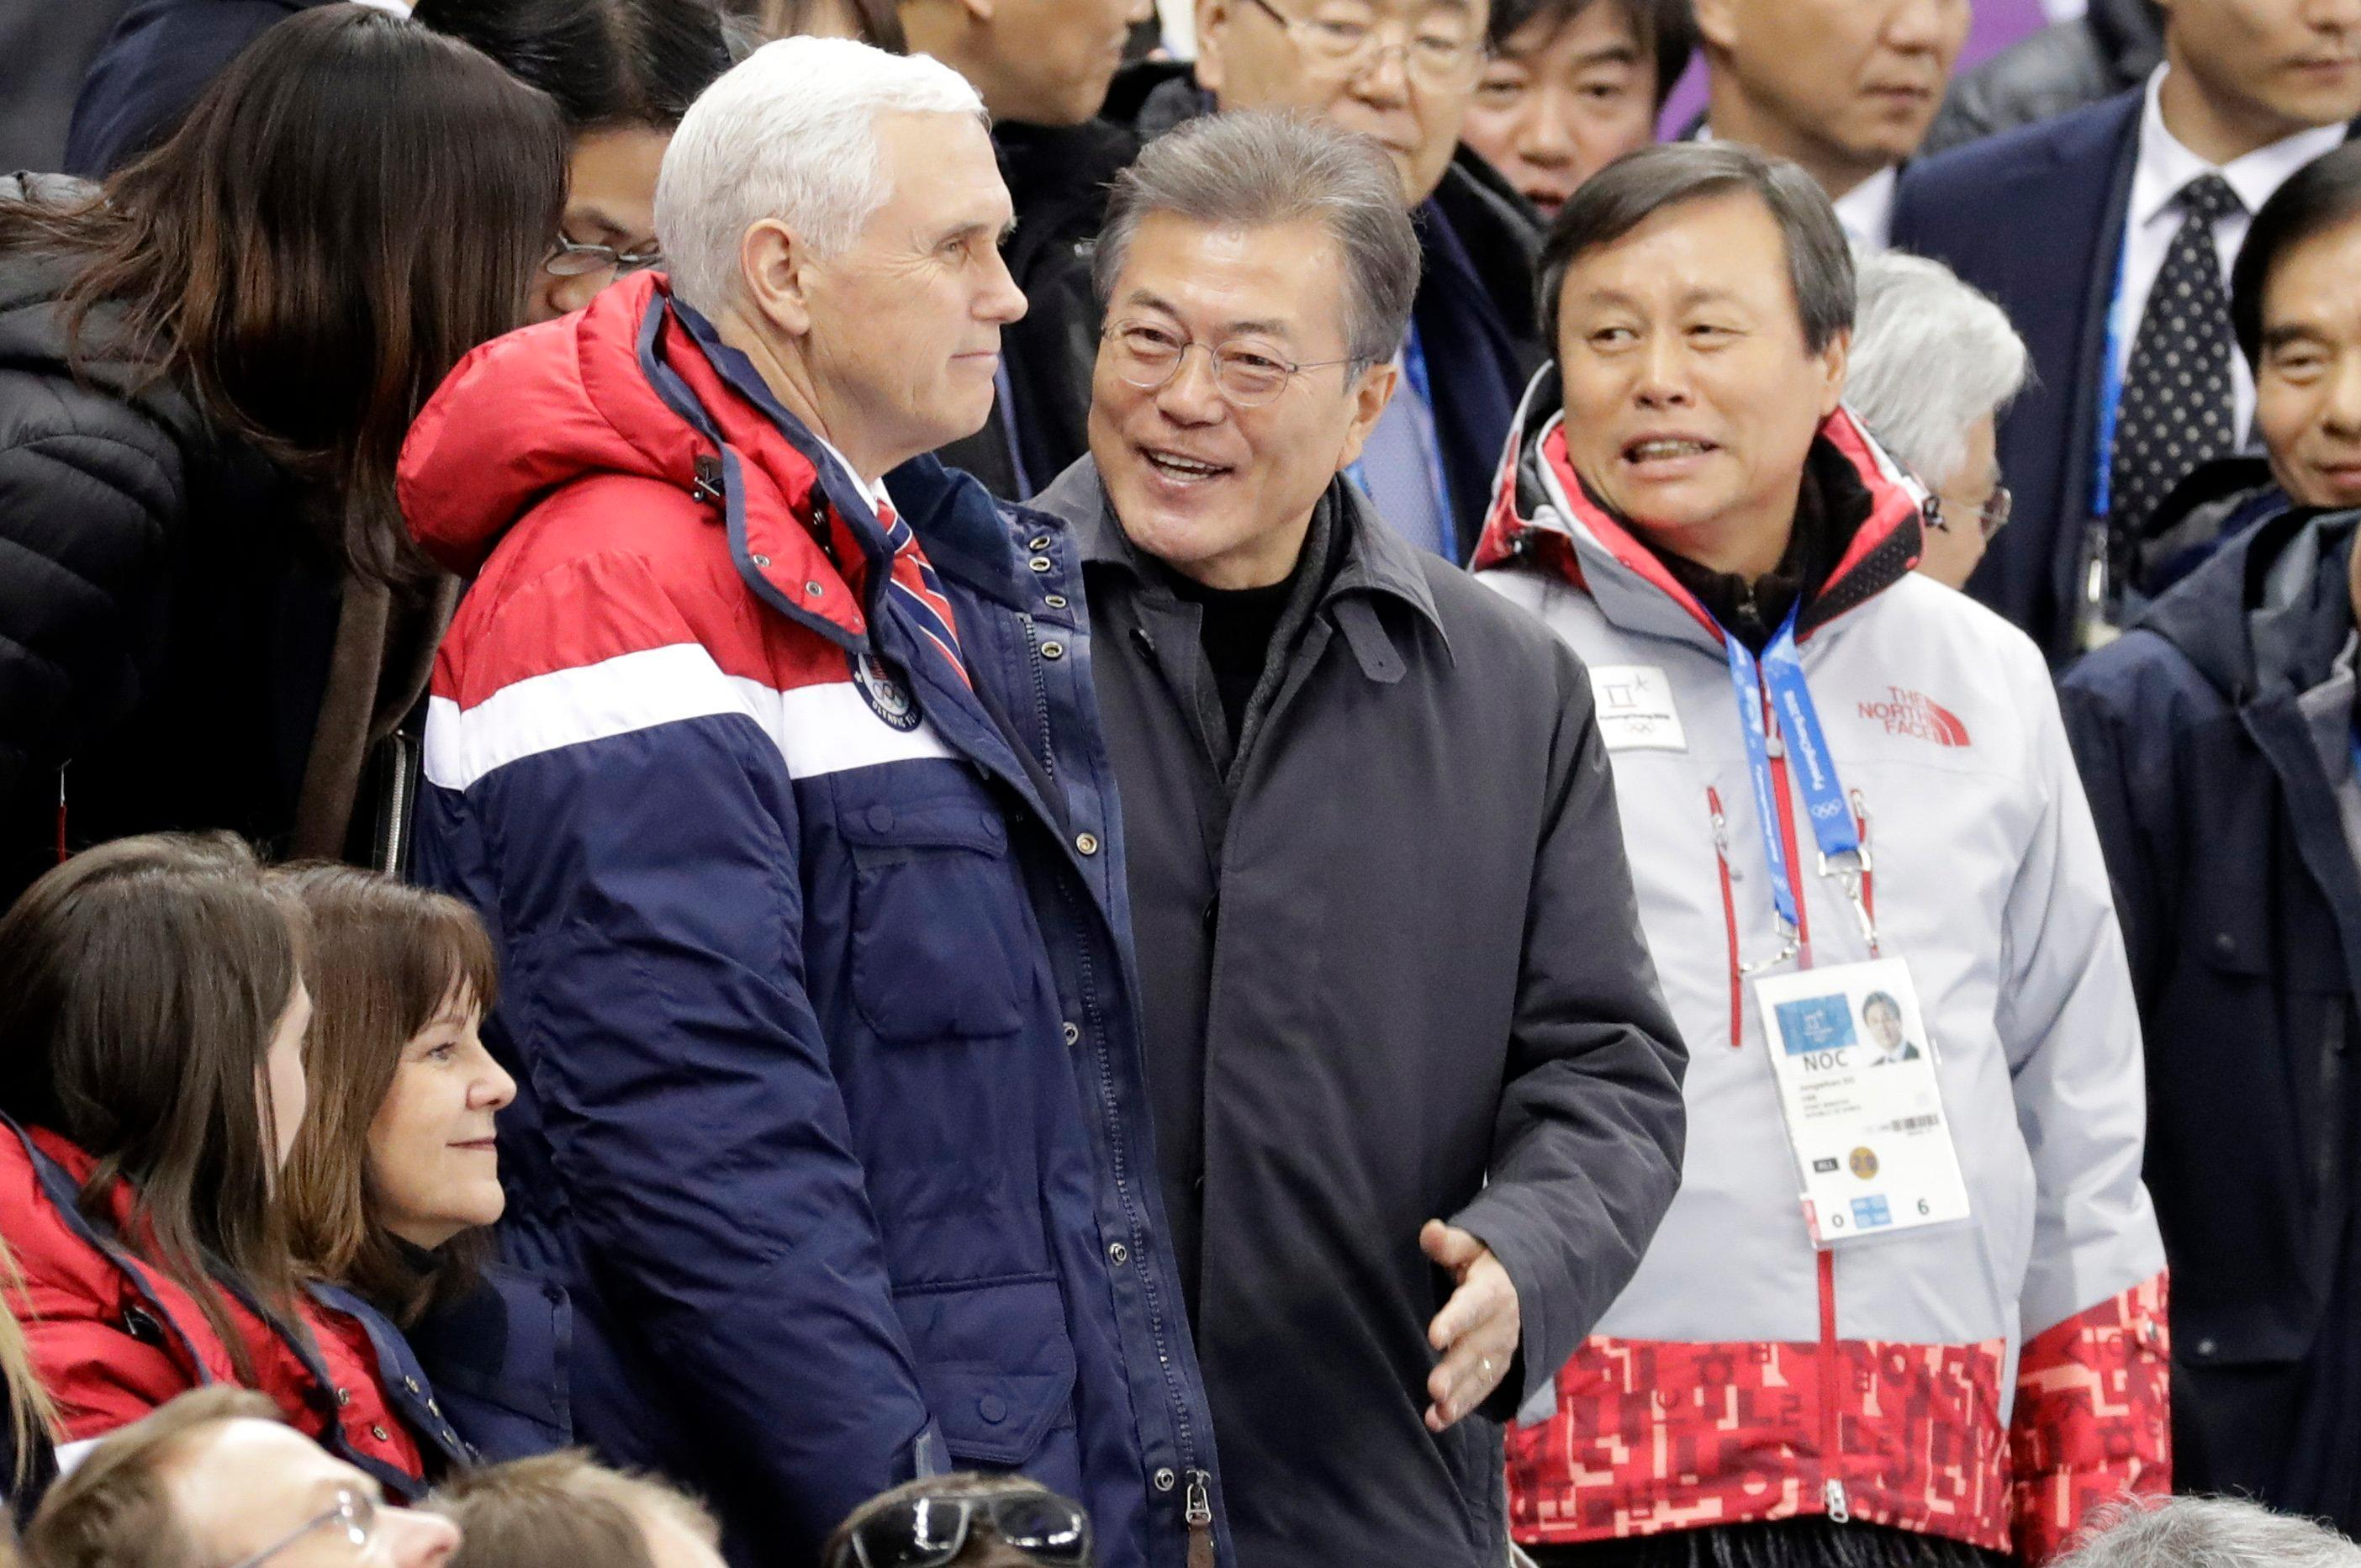 United States' Vice President Mike Pence, centre left and South Korean President Moon Jae-in attend the ladies' 500 meters short-track speedskating in the Gangneung Ice Arena at the 2018 Winter Olympics in Gangneung, South Korea, Saturday, Feb. 10, 2018. (AP Photo/Bernat Armangue)